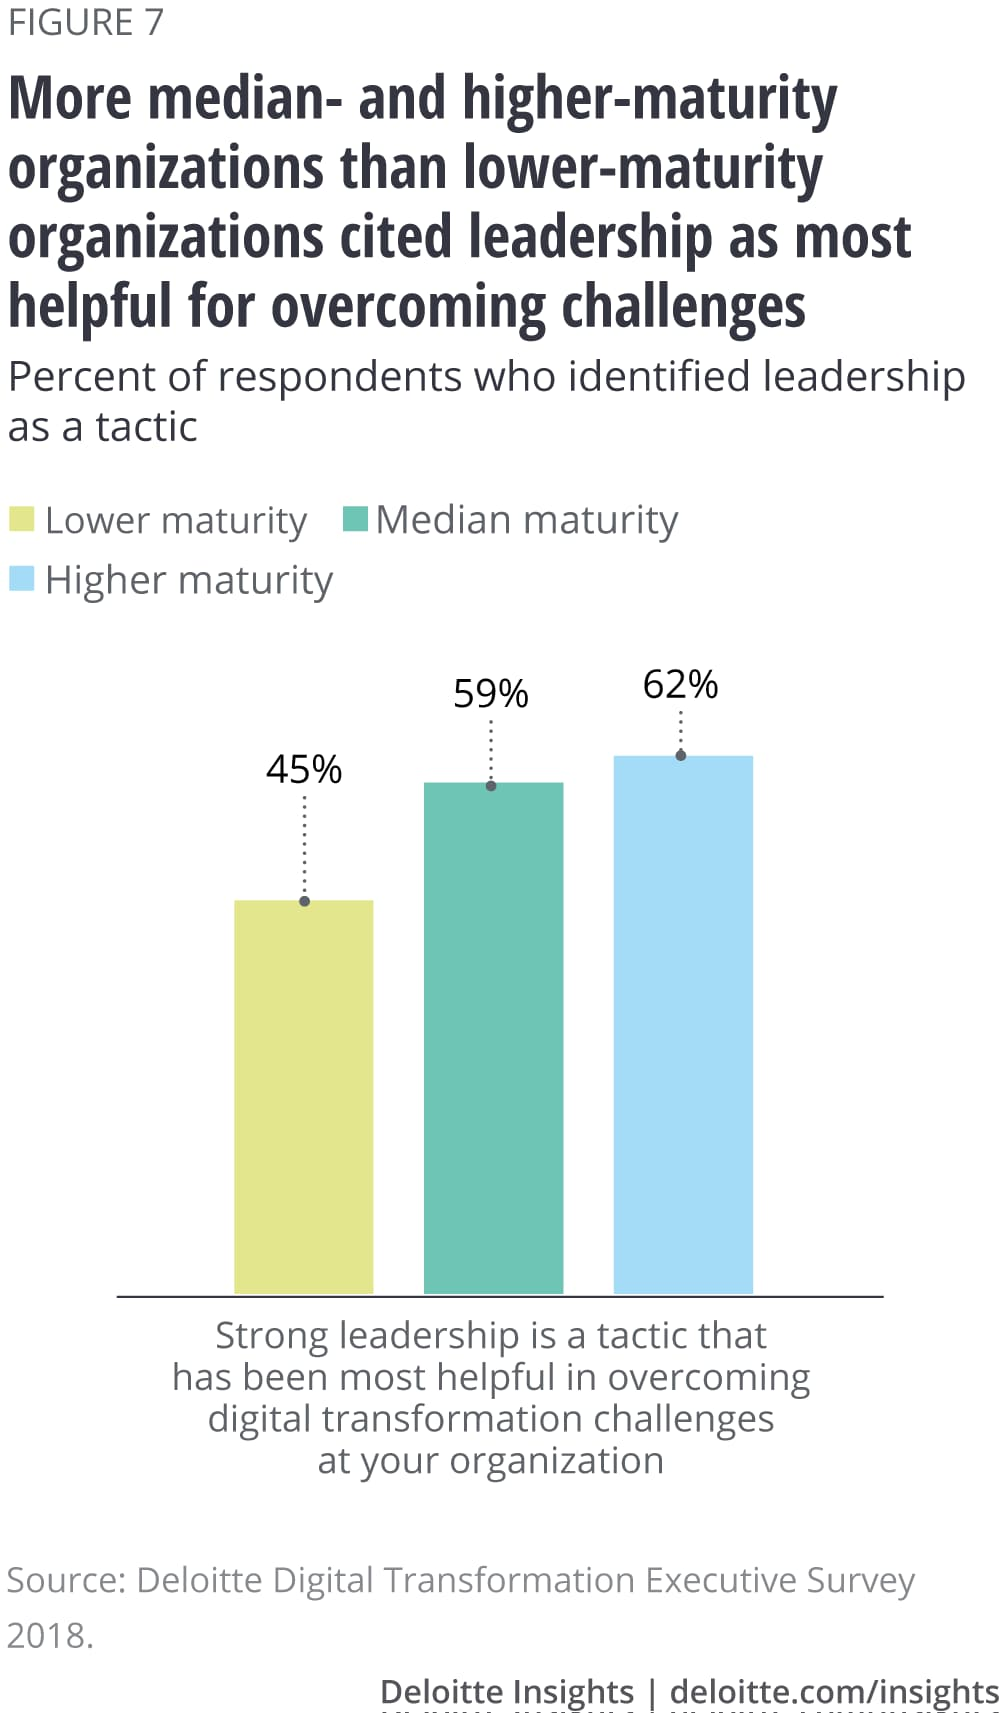 More median- and higher-maturity organizations than lower-maturity organizations cited leadership as most helpful for overcoming challenges